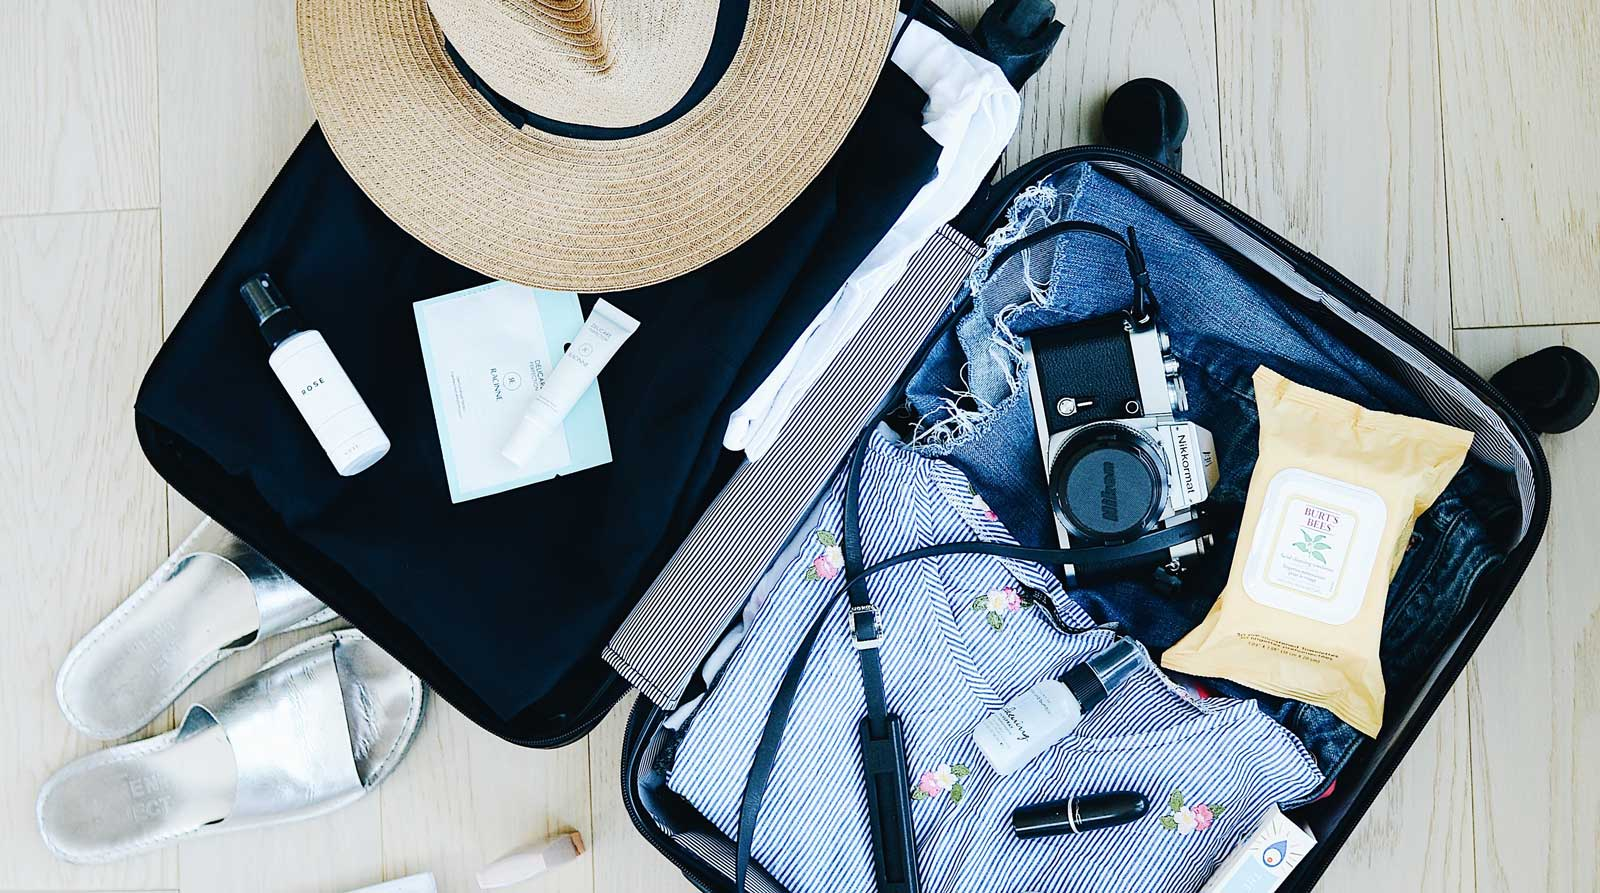 The Complete Packing List for Fiji